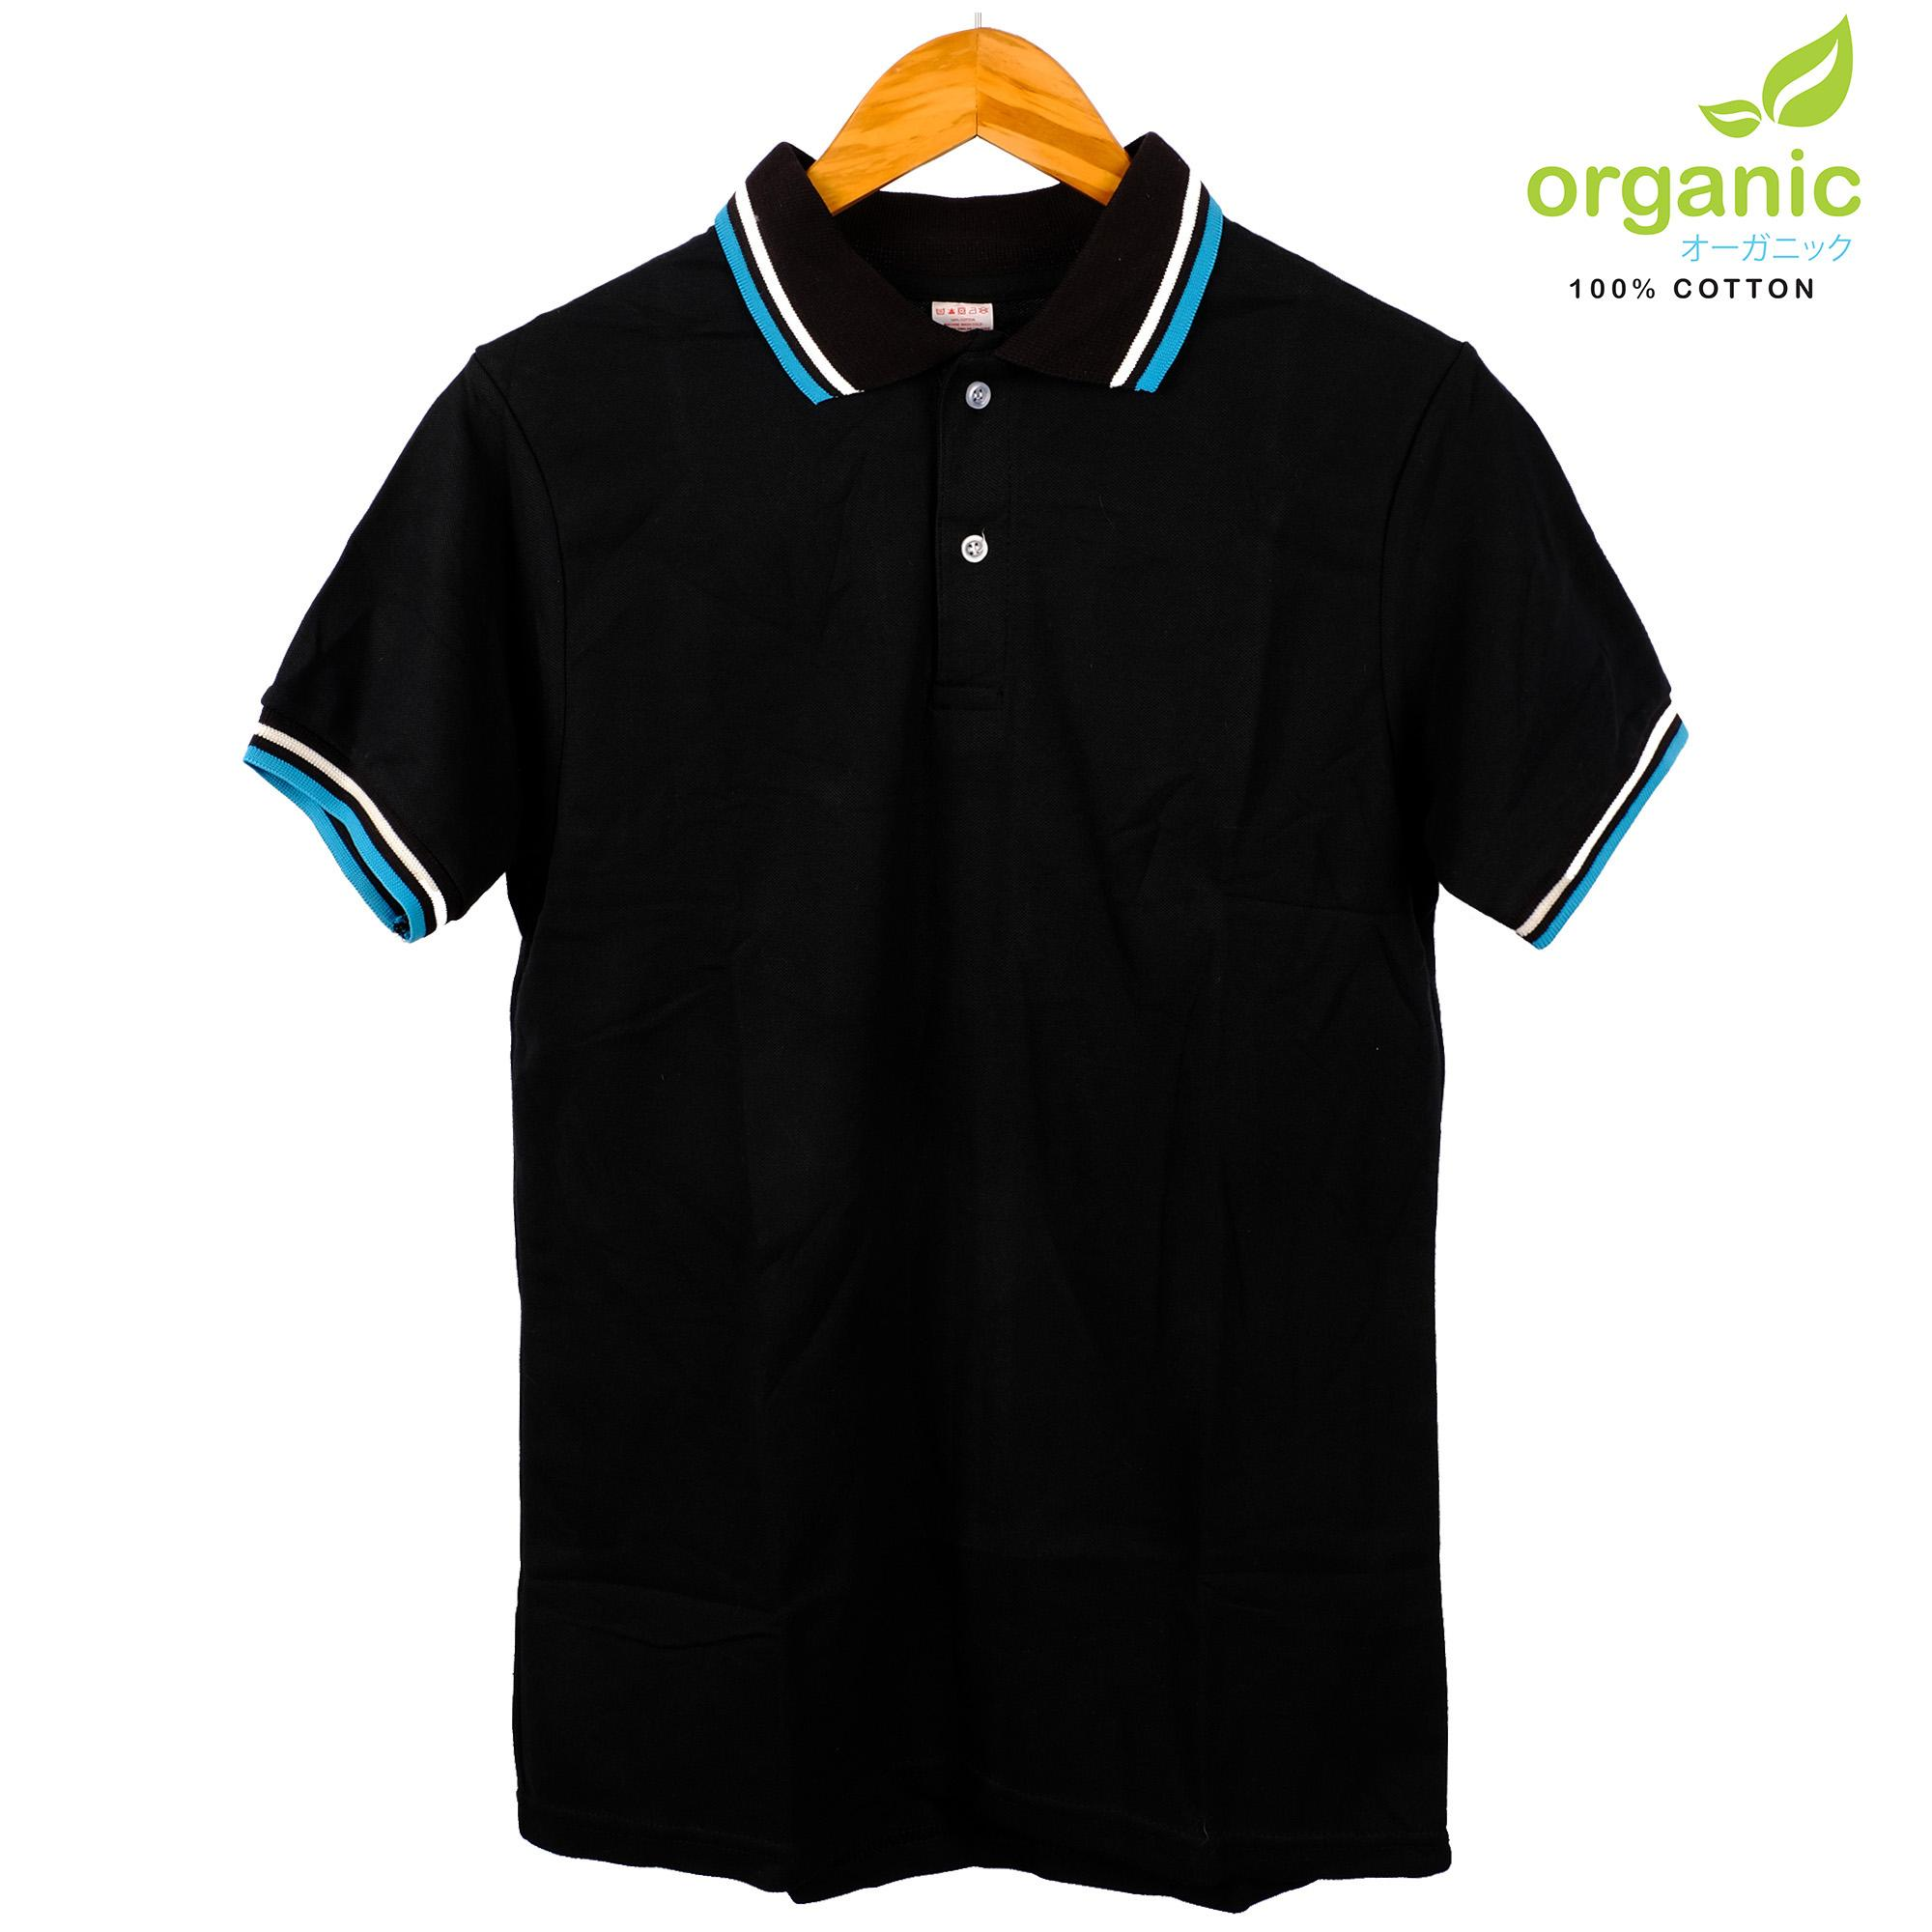 Organic Mens Tipped Pique Polo Shirt (Black) Tees t shirt tshirt shirts  tshirts tee 4bdca94d8c